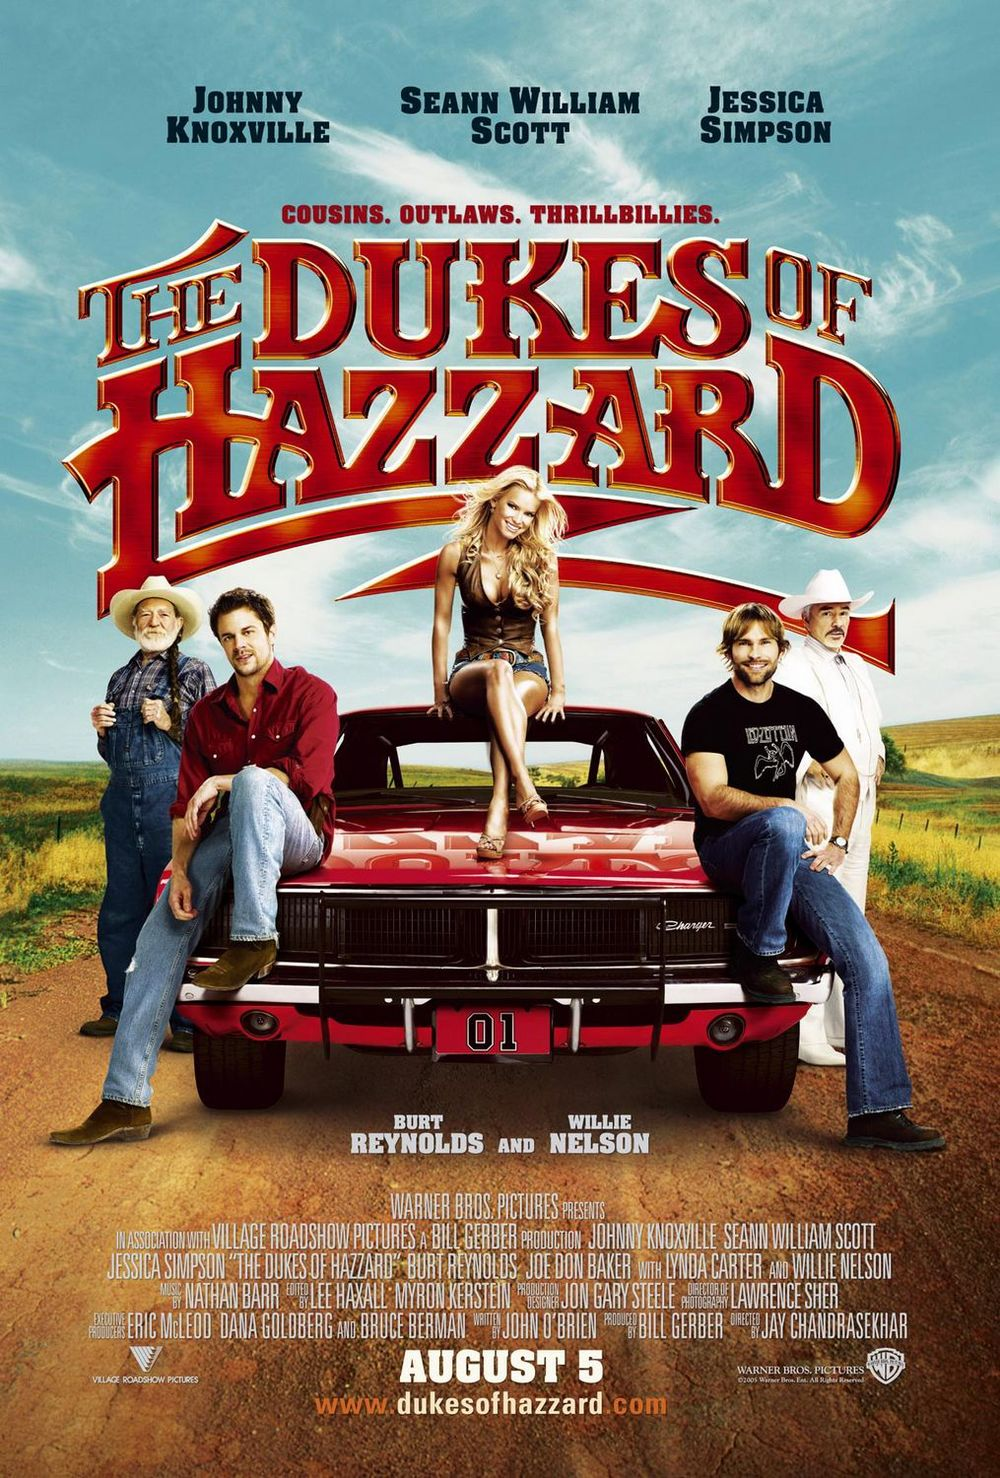 2005-dukes_of_hazzard-1.jpg